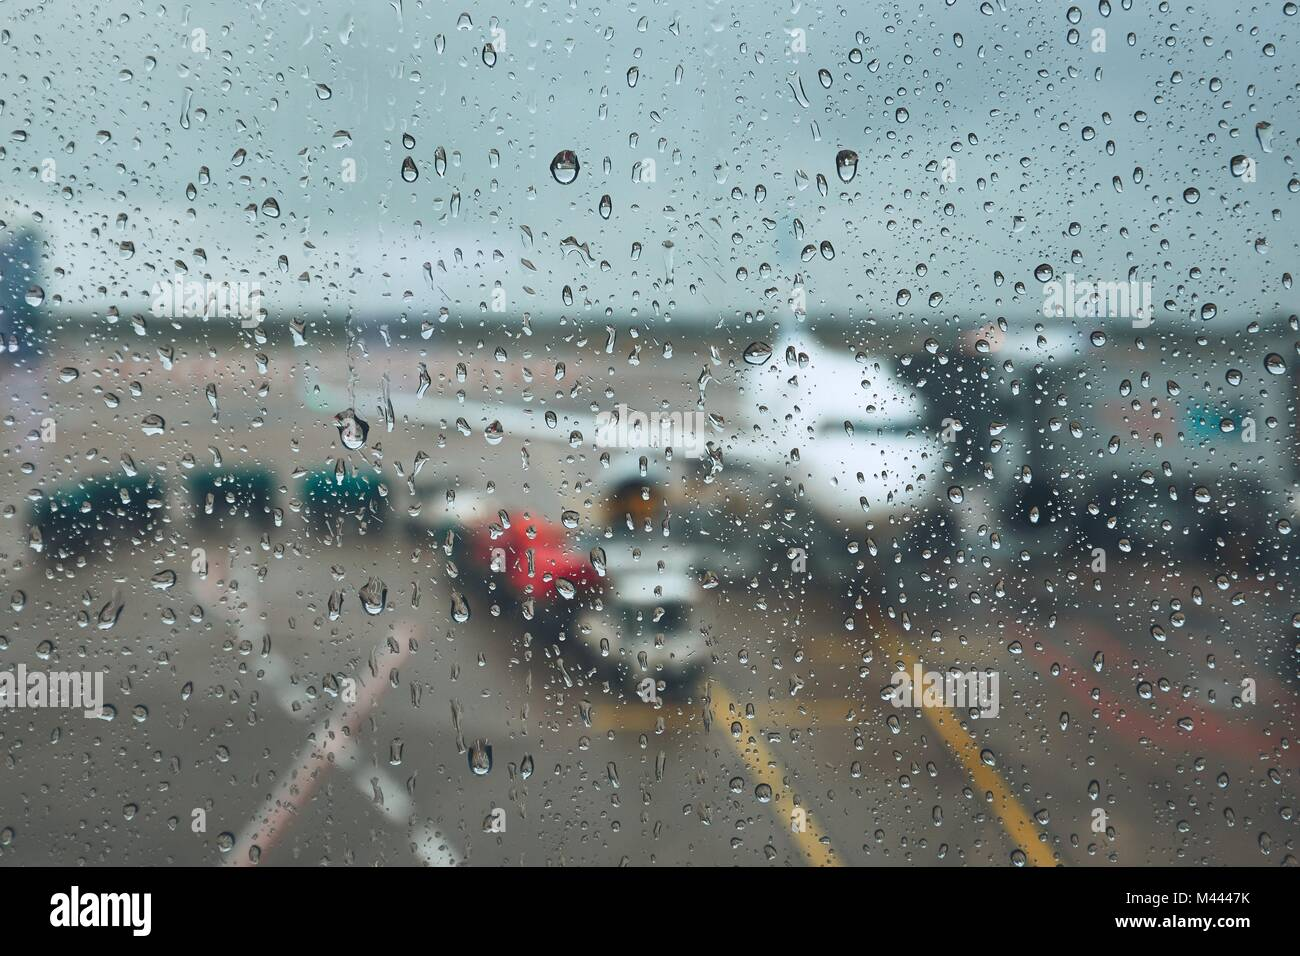 Storm at the airport. View of the airplane through rain drops. Themes weather and delay or canceled flight. - Stock Image